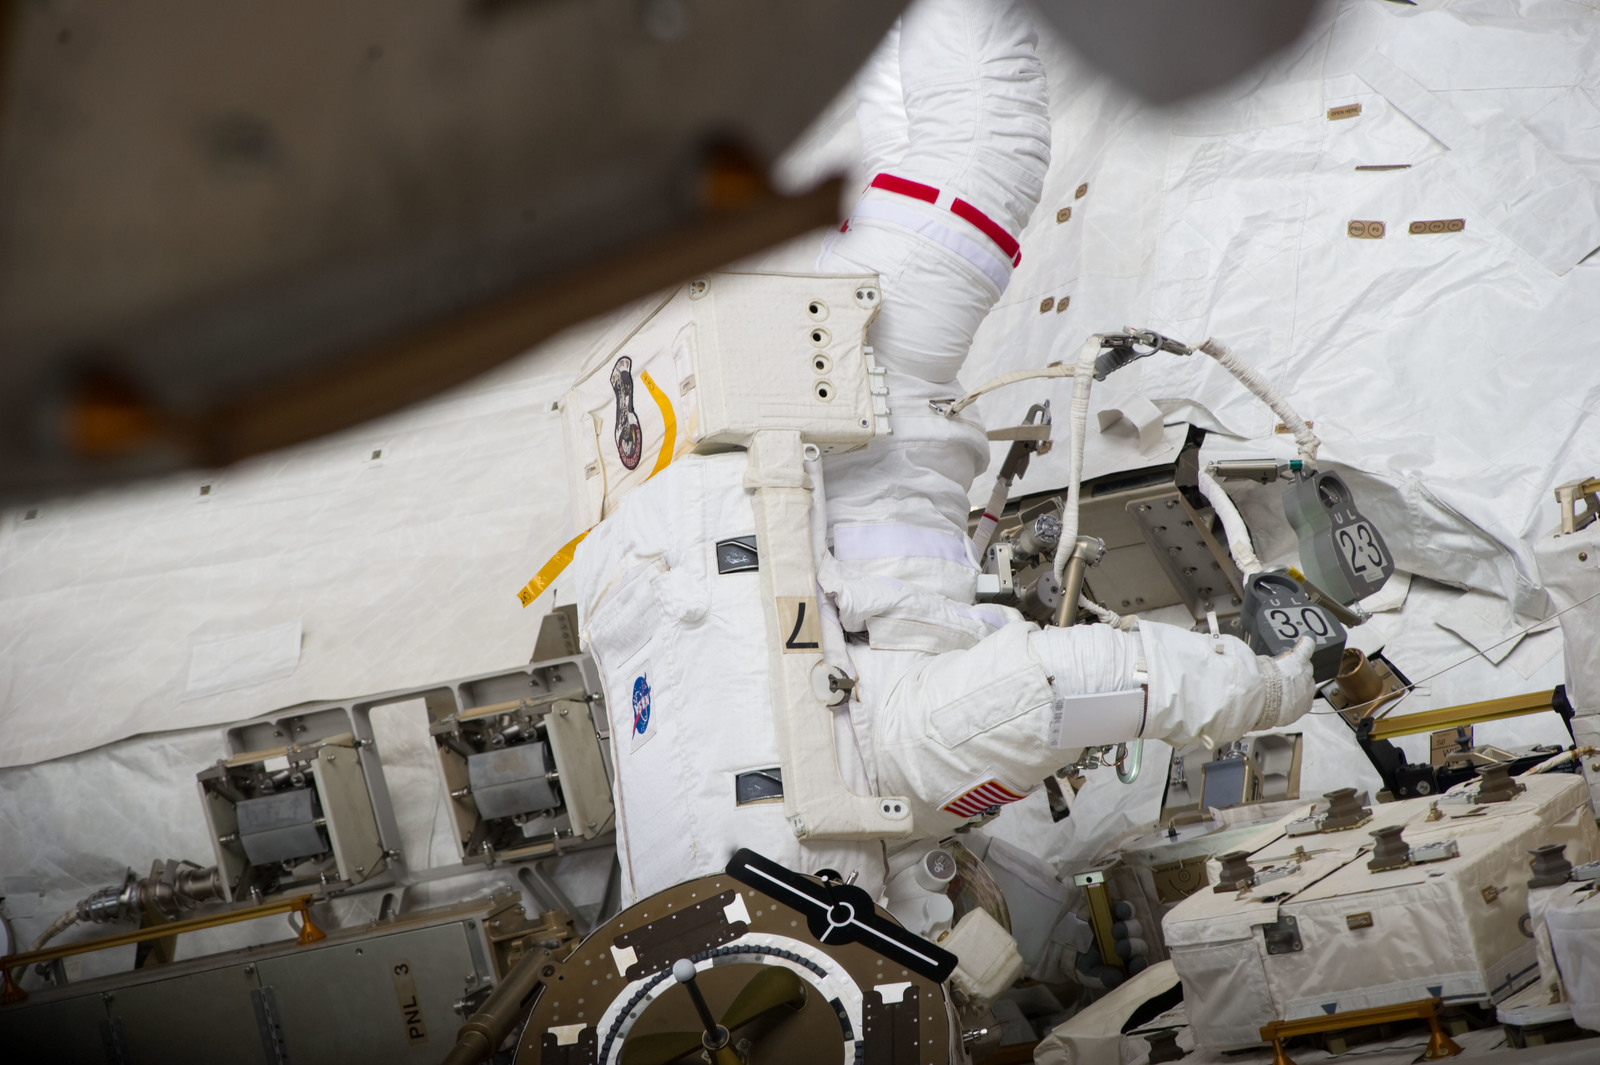 S134E009646 - STS-134 - View of STS-134 MS Chamitoff during EVA-4